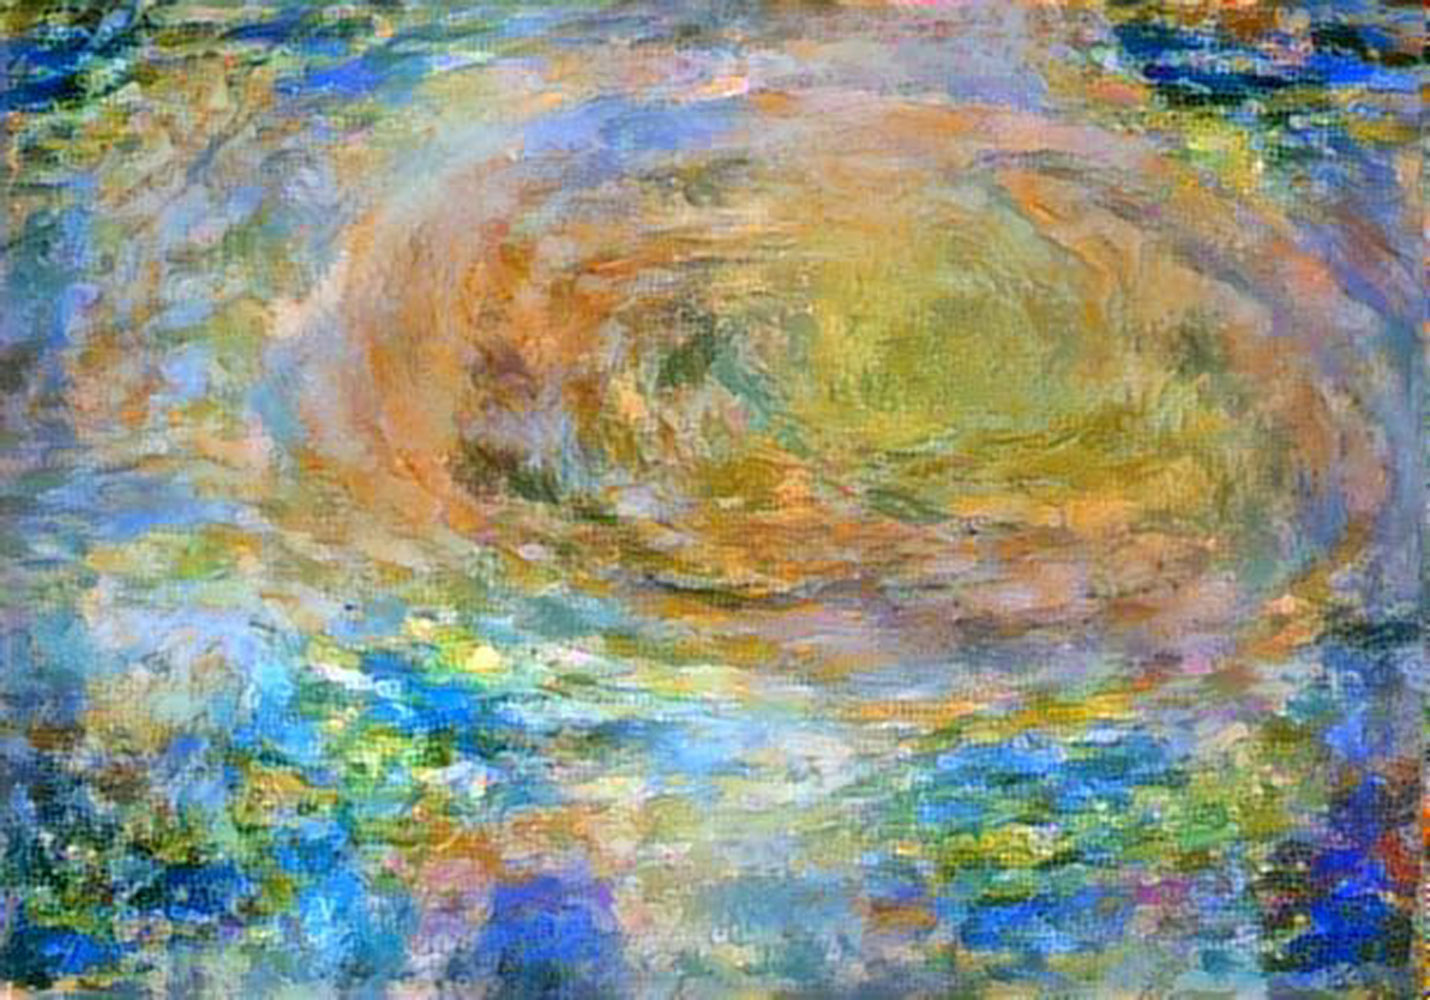 Citizen scientist David Englund created this avant-garde Jovian artwork using data from the JunoCam imager on NASA's Juno spacecraft.